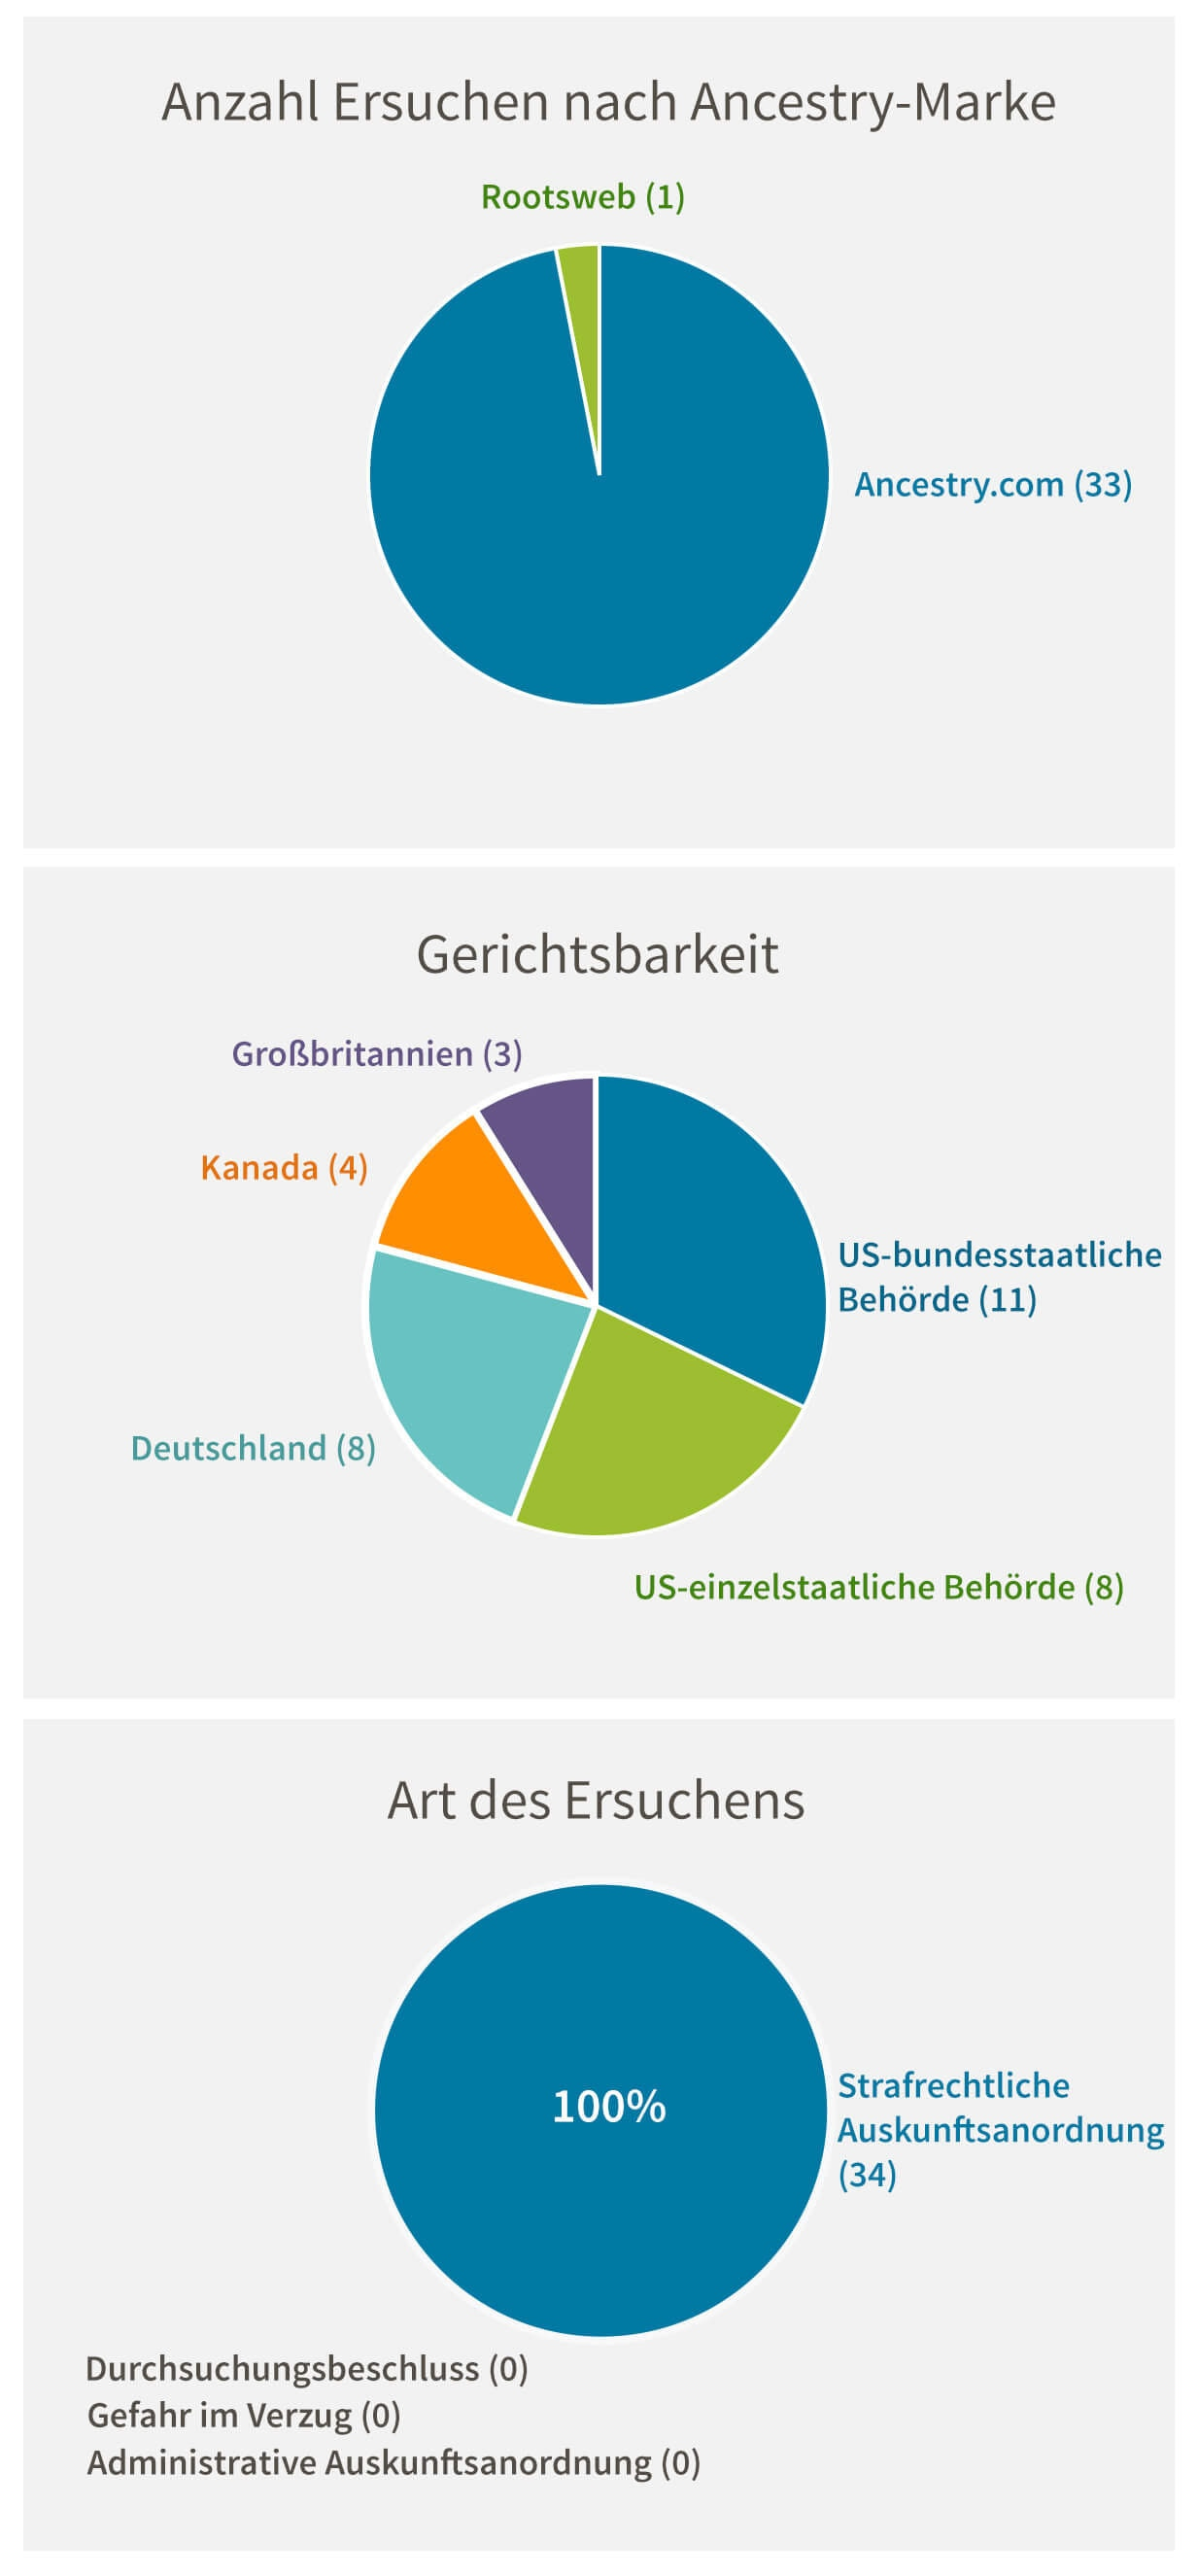 Anzahl Ersuchen nach Ancestry-Marke: Ancestry.com (33), Rootsweb (1). Gerichtsbarkeit: US Federal (11), US State (8), Germany (8), Canada (4), United Kingdom (3). Art des Ersuchens: Criminal Subpoena (34), Search Warrant (0), Emergency Request (0), Administrative Subpoena (0)